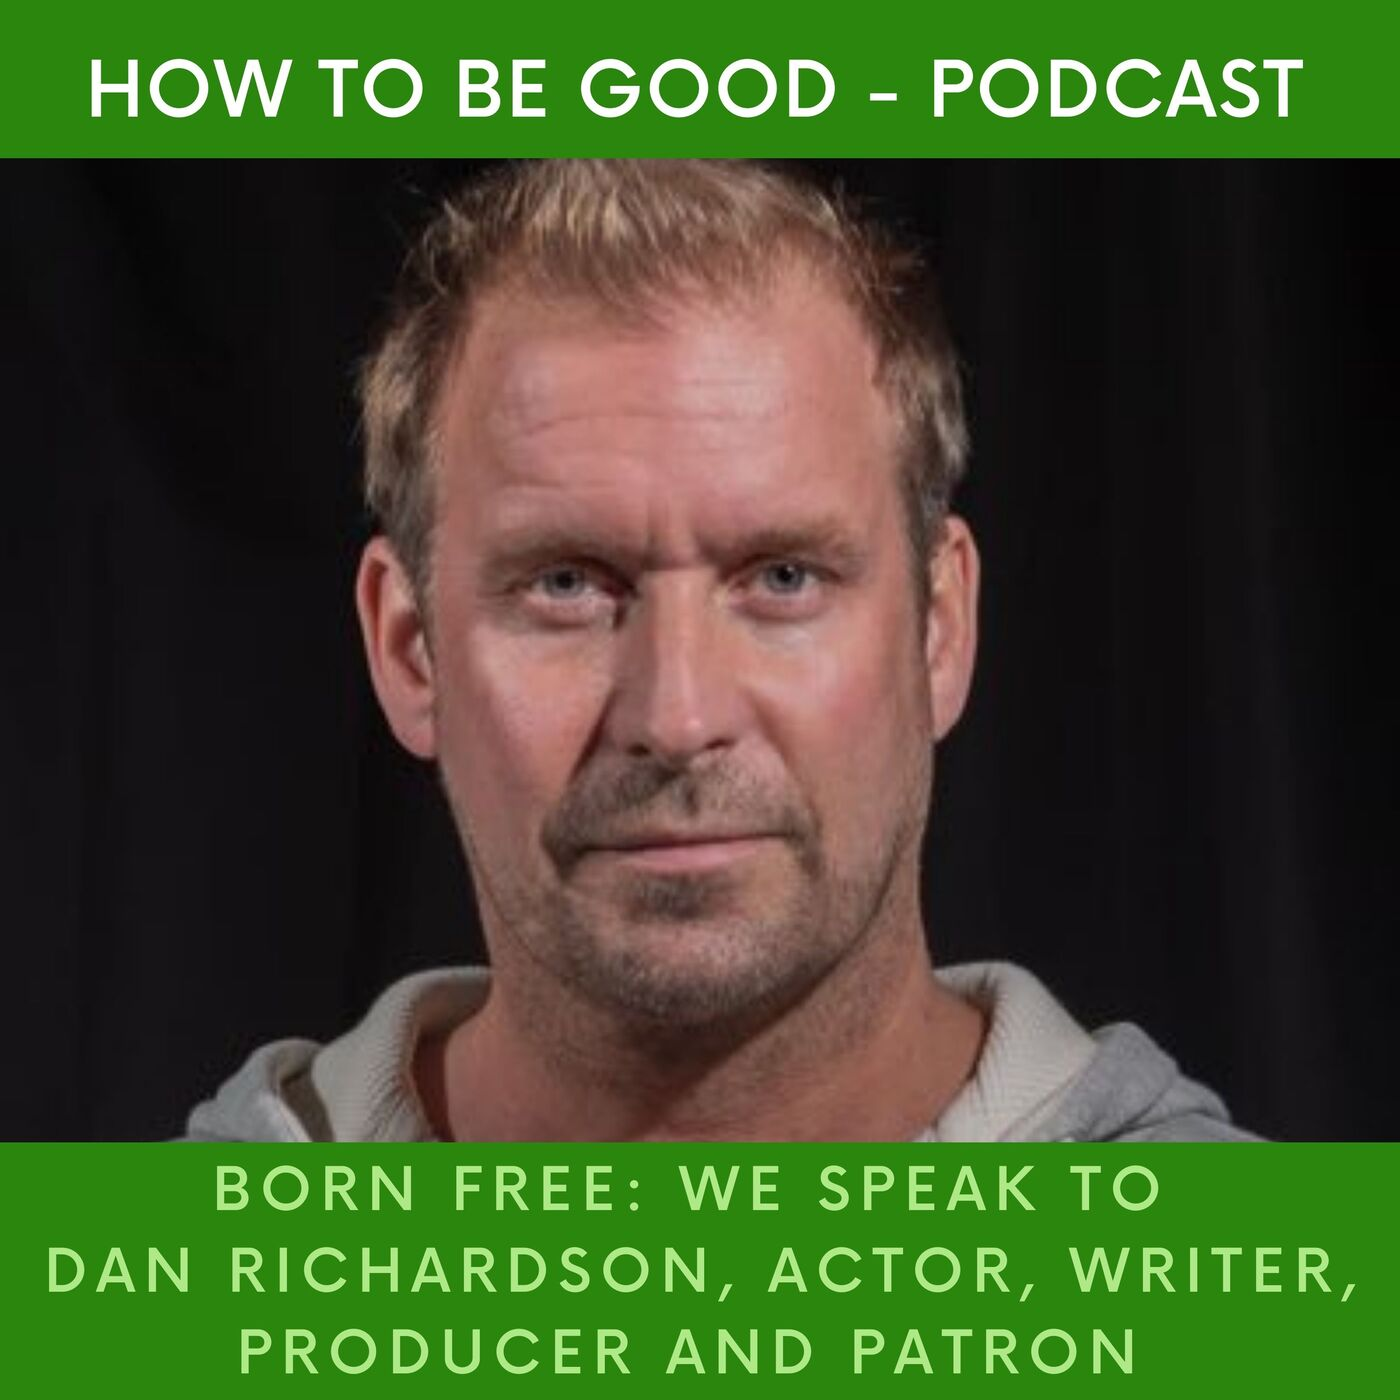 Dan Richardson Part 1: We speak to actor, writer, producer and patron of the Born Free Foundation.